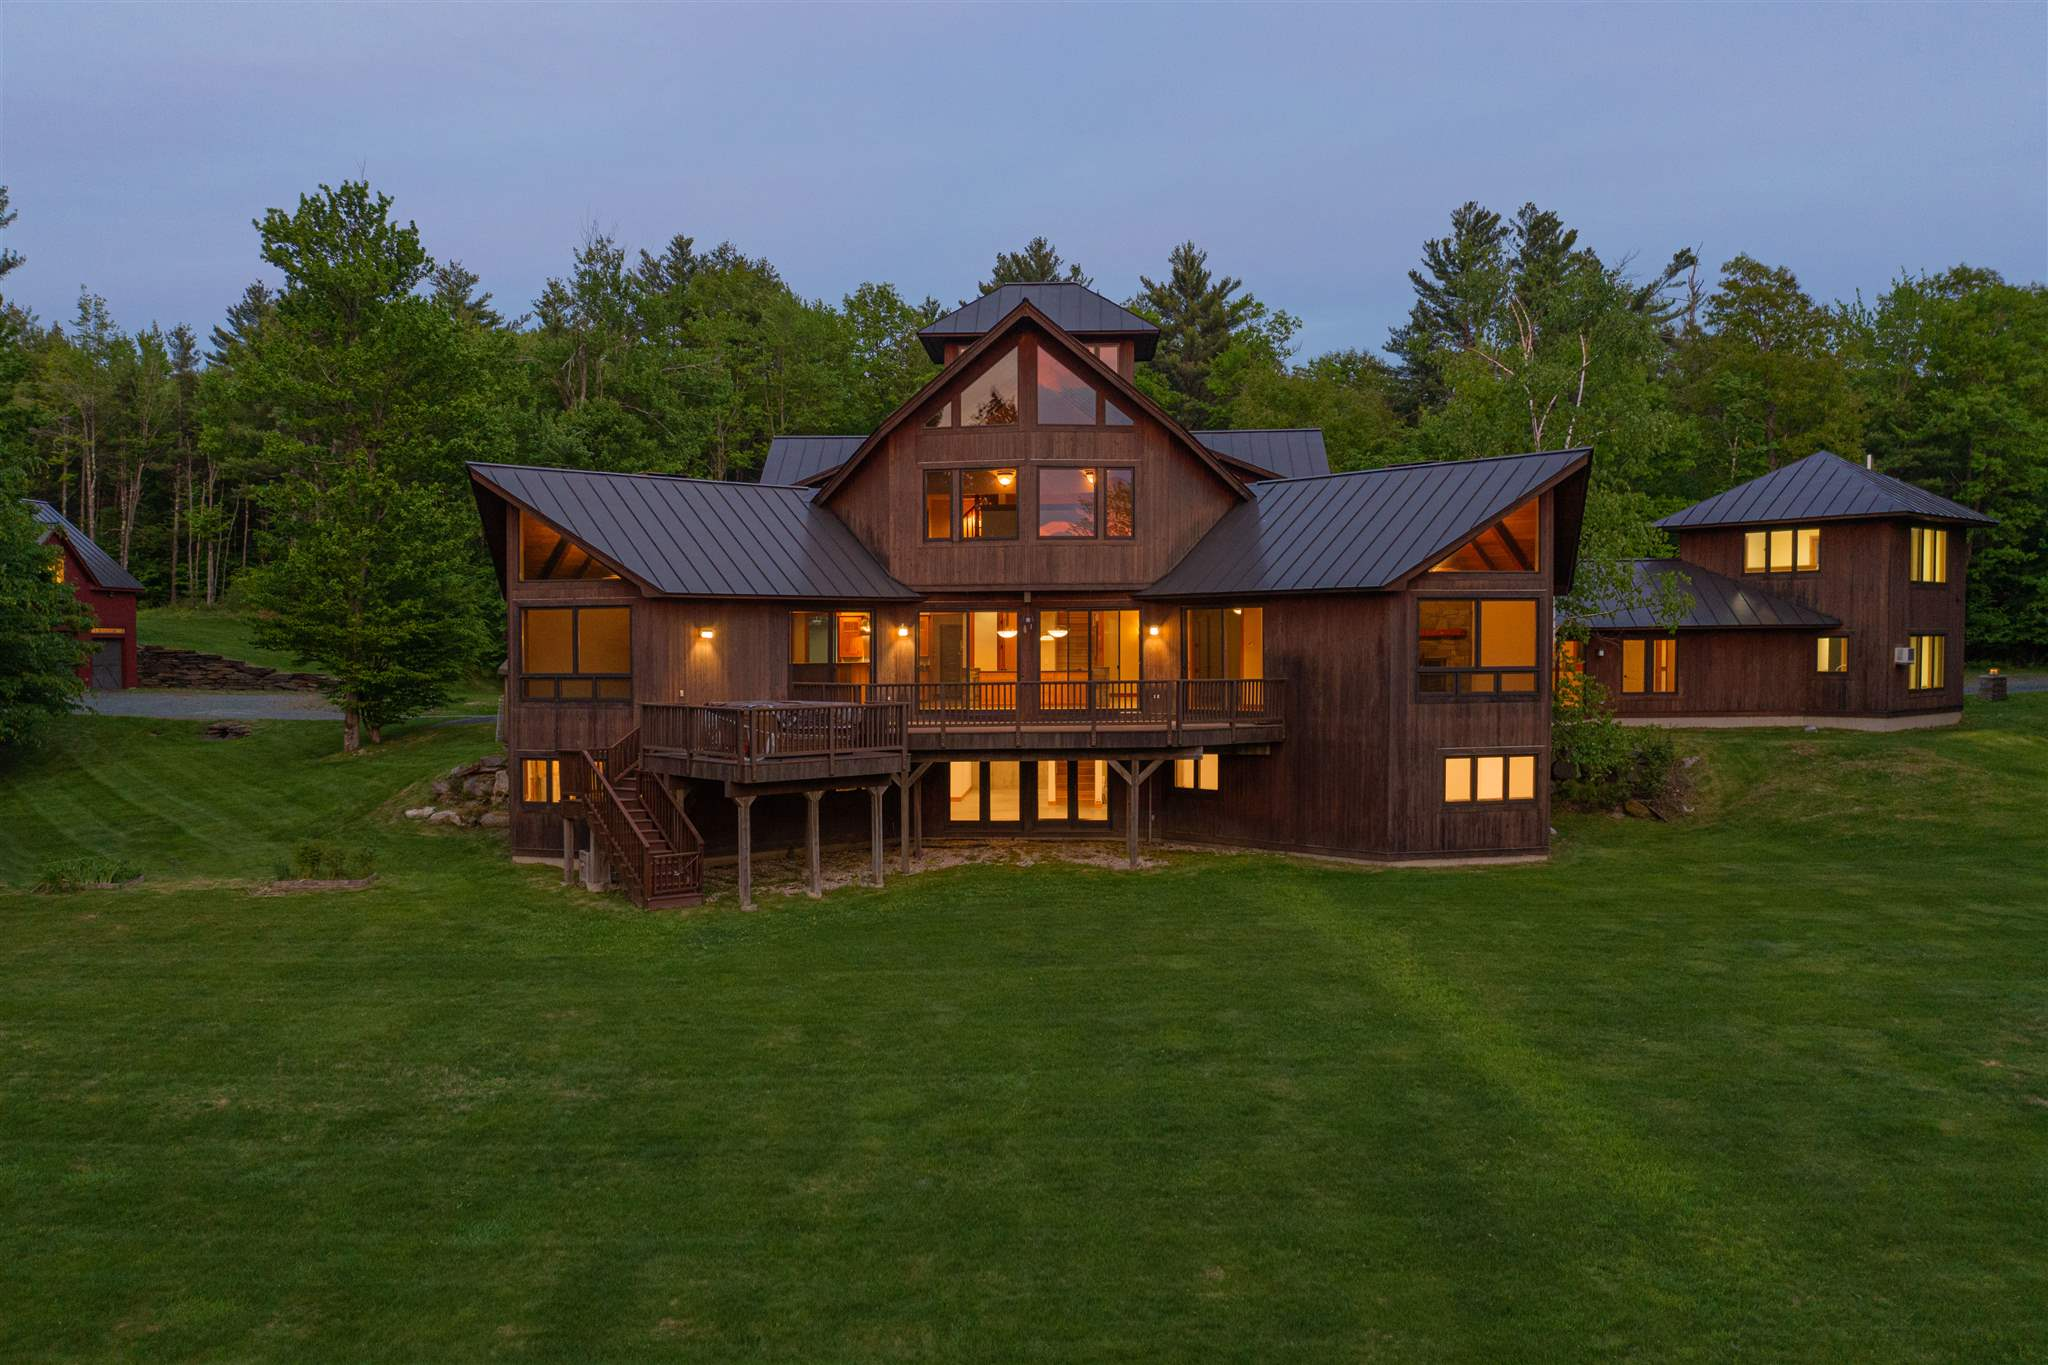 VILLAGE OF ETNA IN TOWN OF HANOVER NH Home for sale $$2,000,000 | $261 per sq.ft.